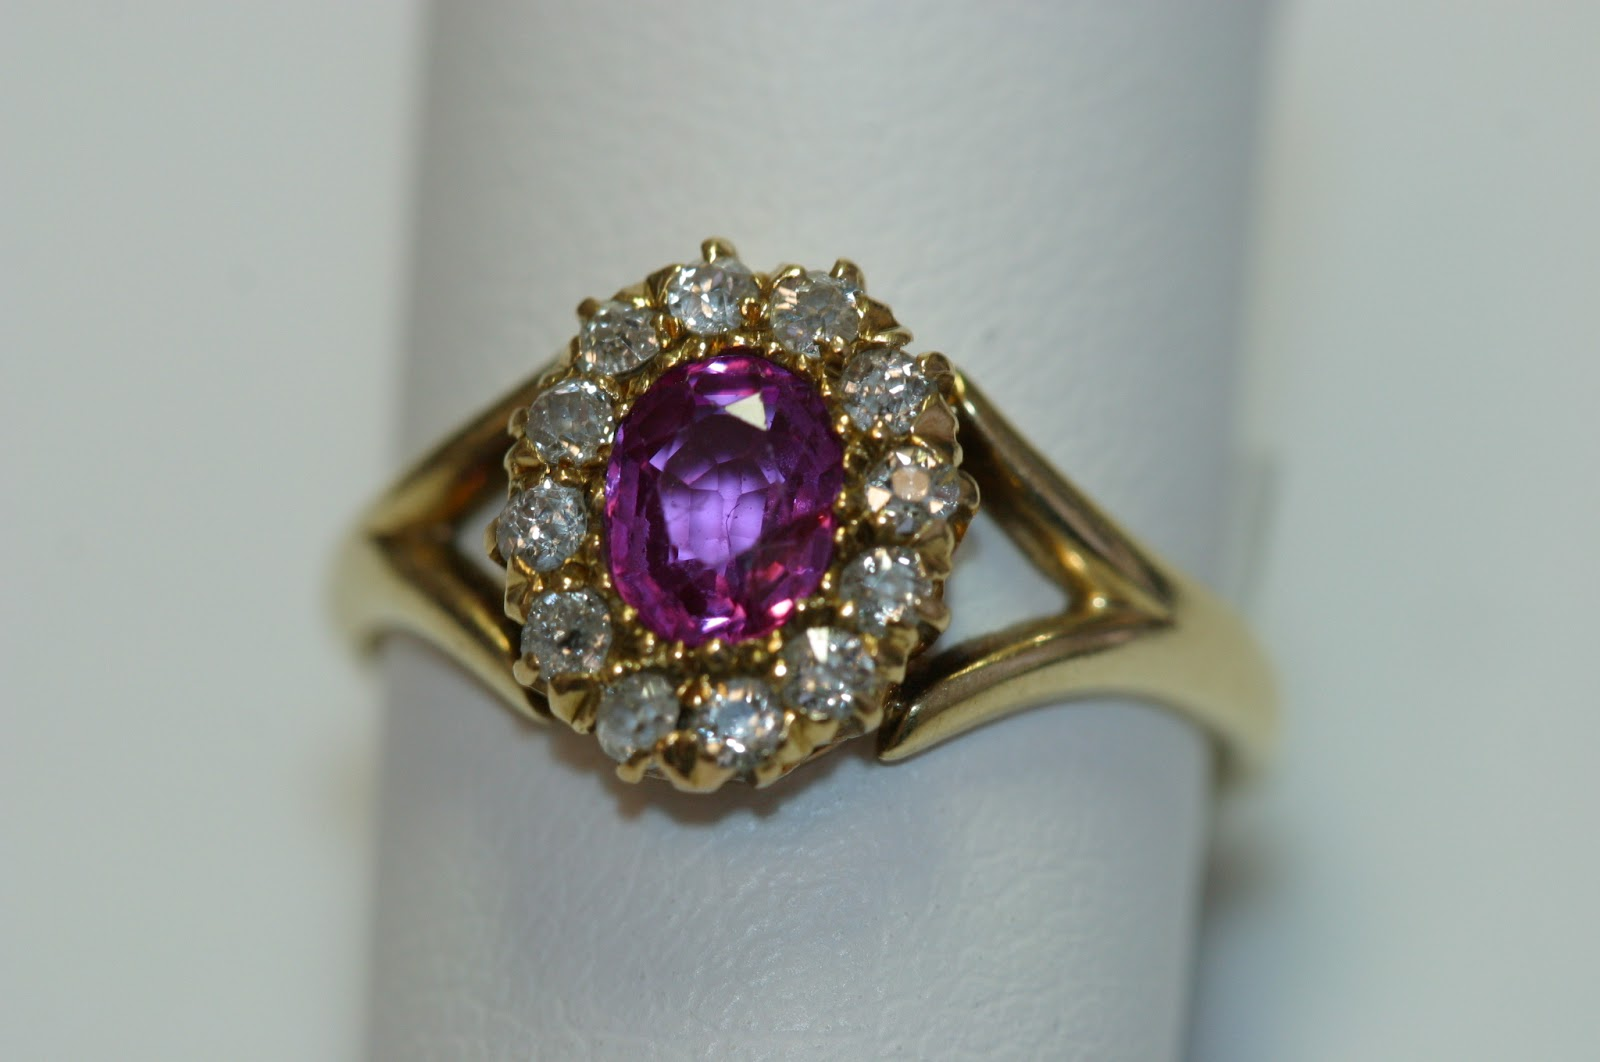 cafe gold buyers toronto antique jewellery dealers